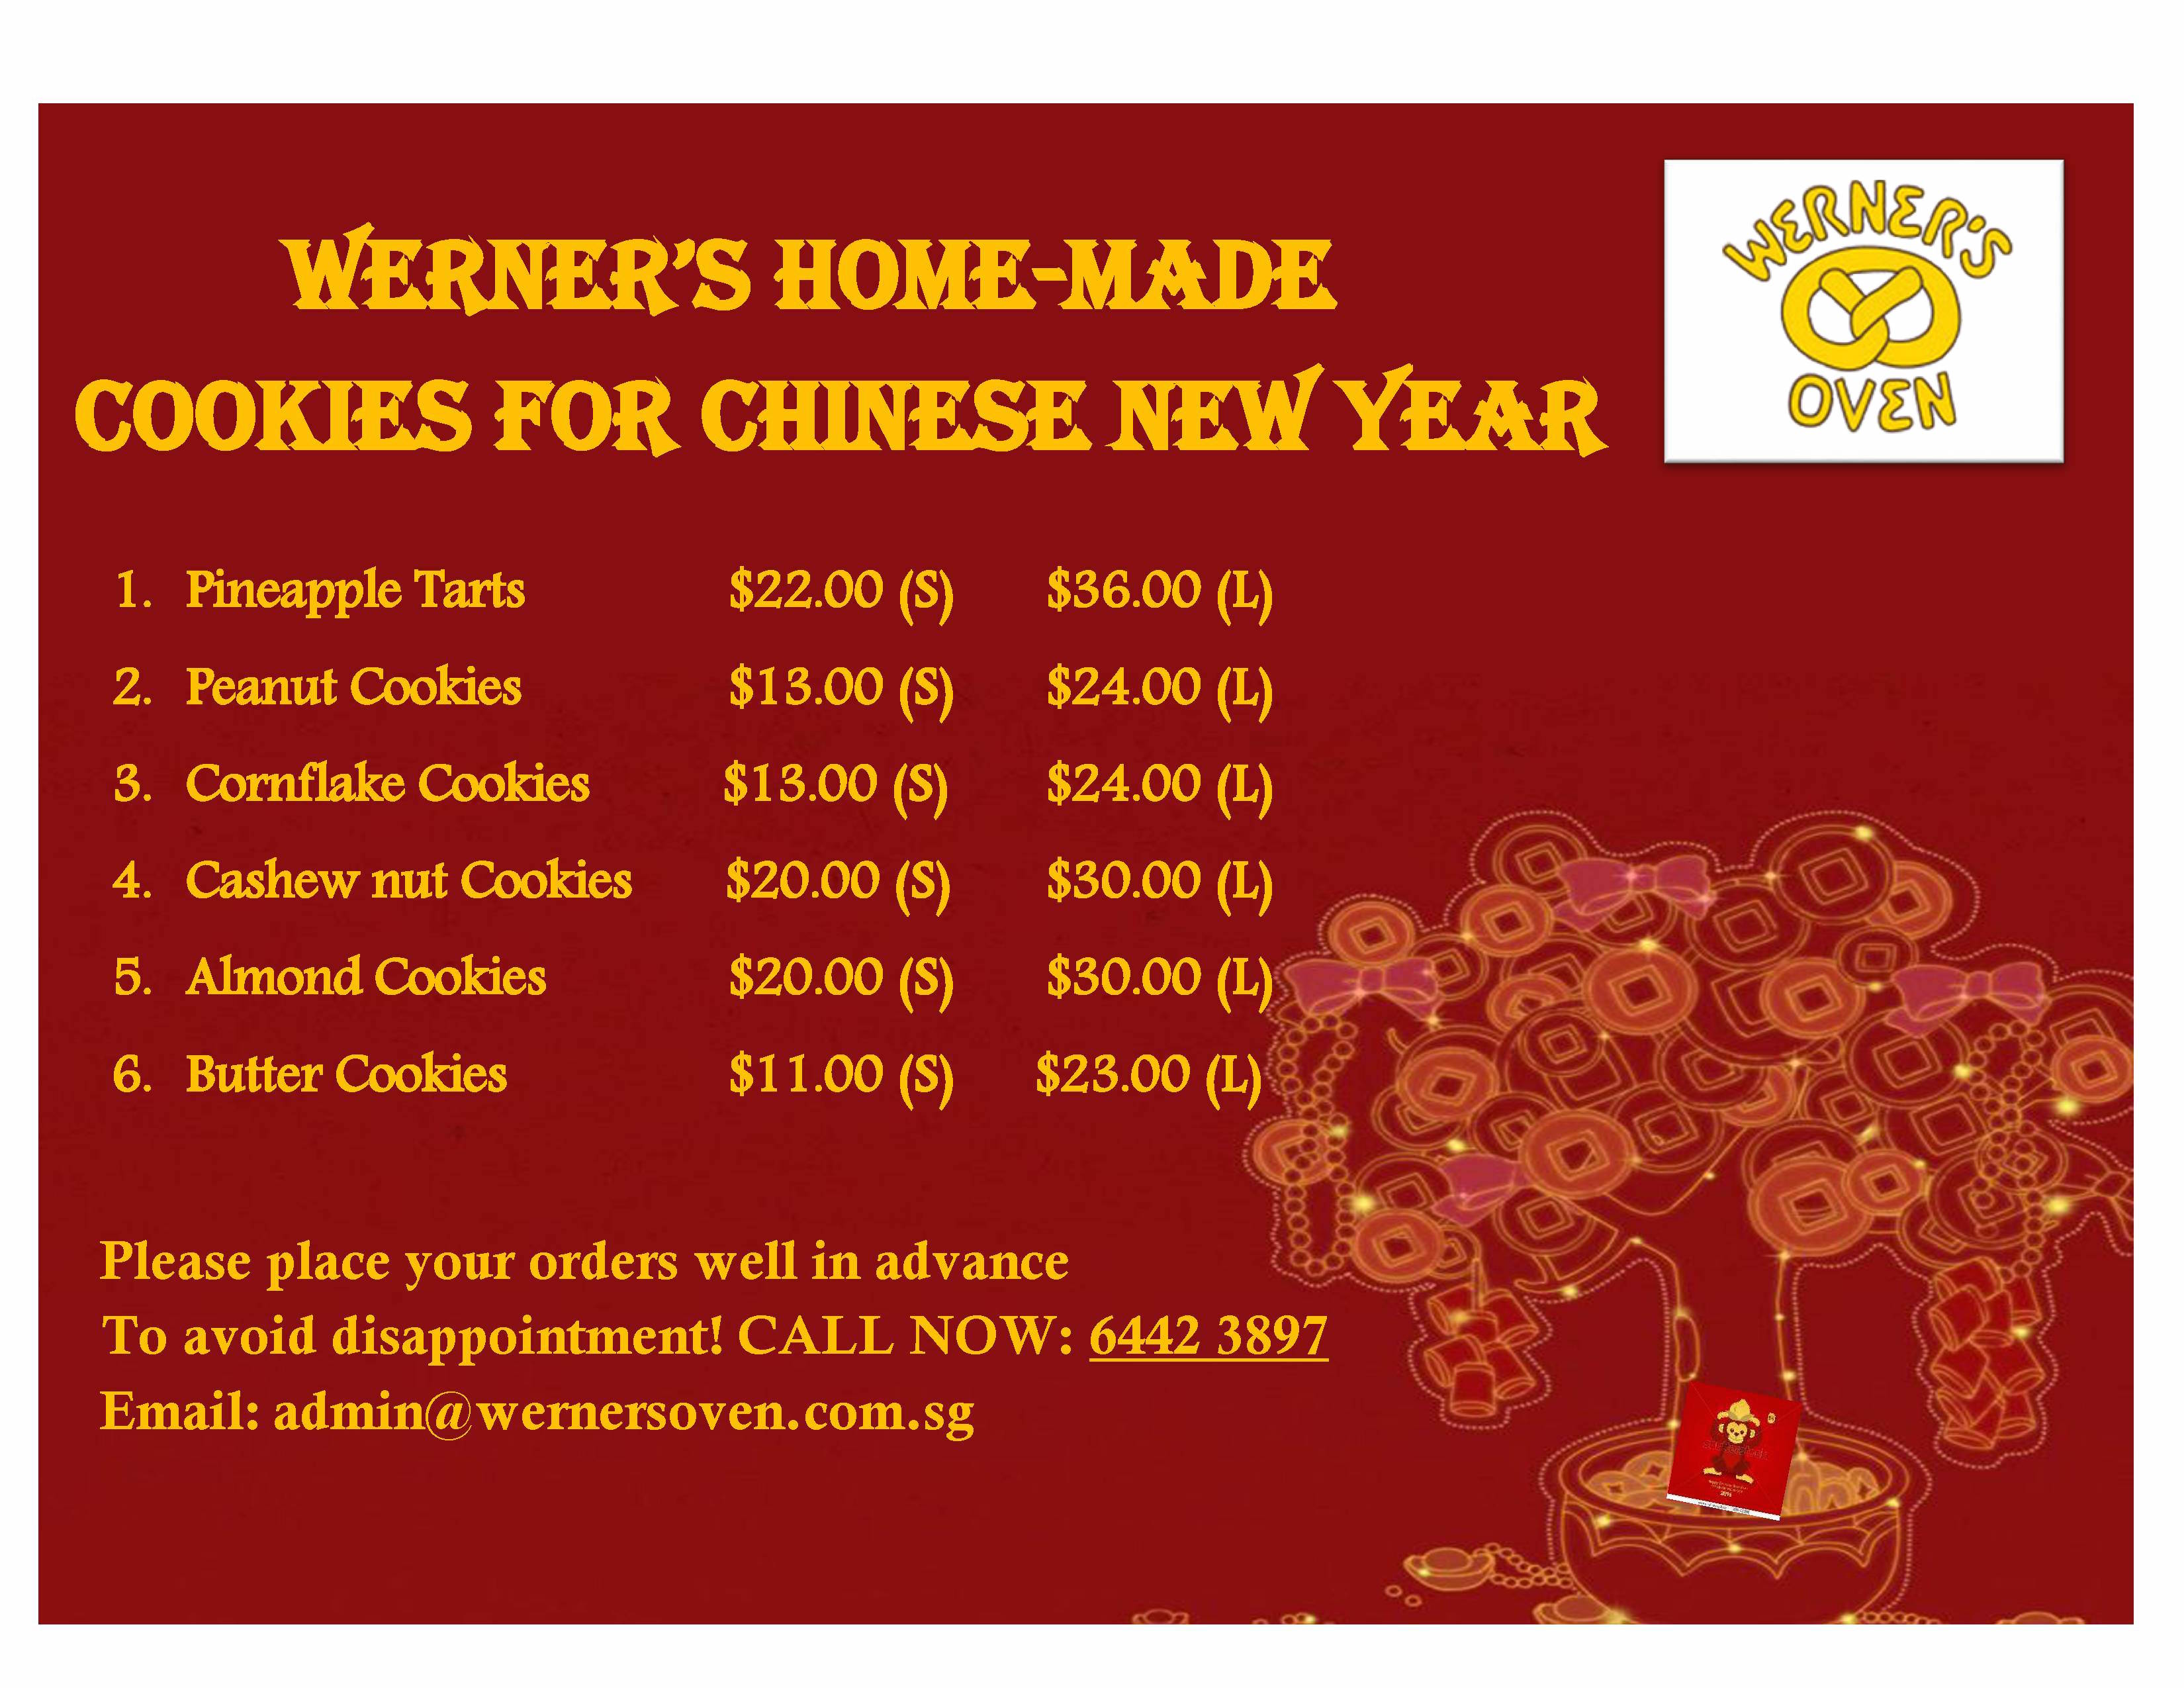 werners oven cny sg